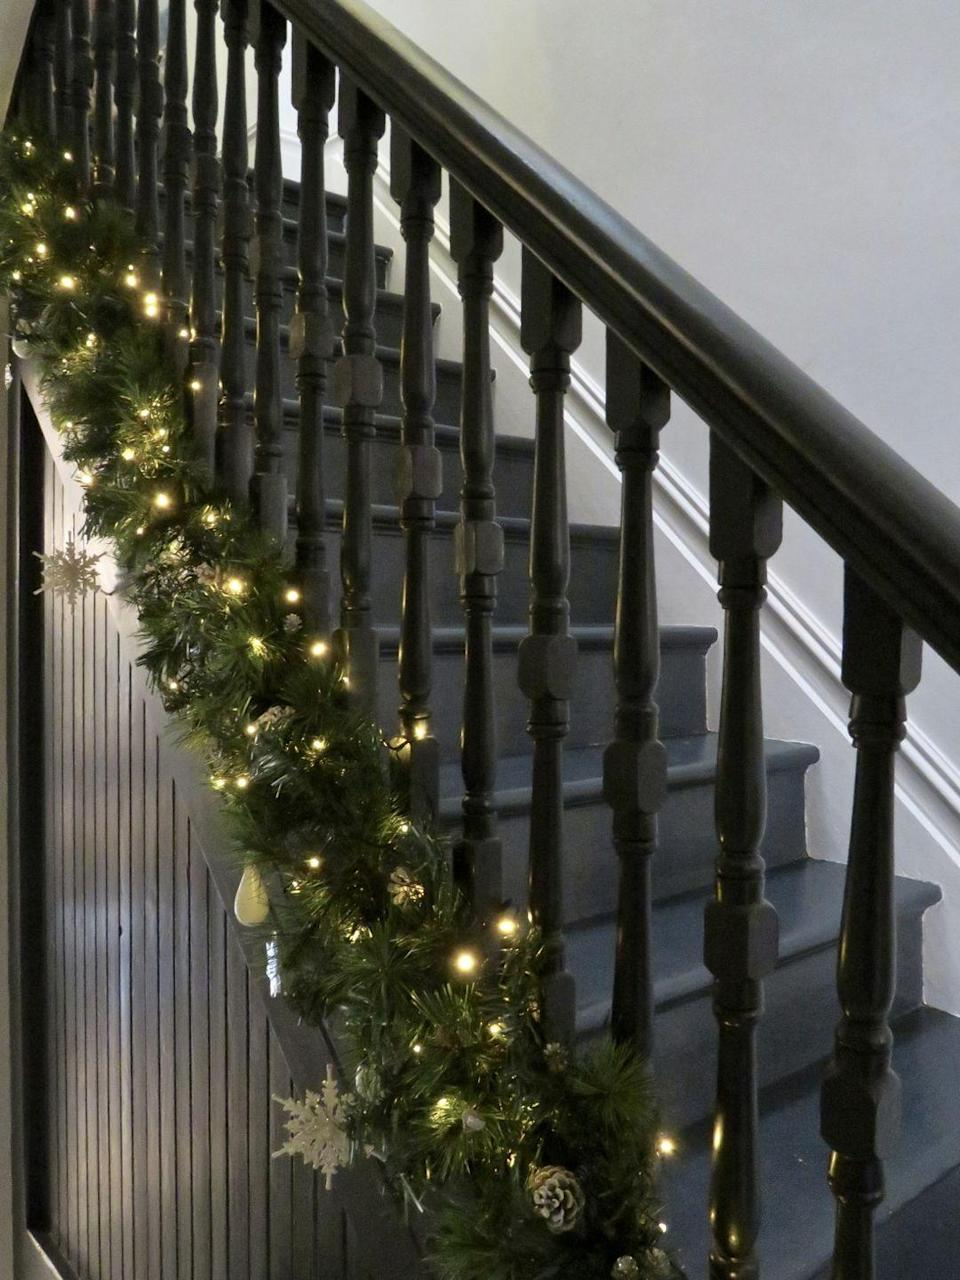 """<p>Here, <a href=""""https://www.ednaandossie.com/festive-stair-garland/"""" rel=""""nofollow noopener"""" target=""""_blank"""" data-ylk=""""slk:Edna & Ossie"""" class=""""link rapid-noclick-resp"""">Edna & Ossie</a> decided to leave the banister empty and glammed up just the base by attaching a garland with ribbons, lights, and some ornaments—<em>et voilà</em>!</p>"""